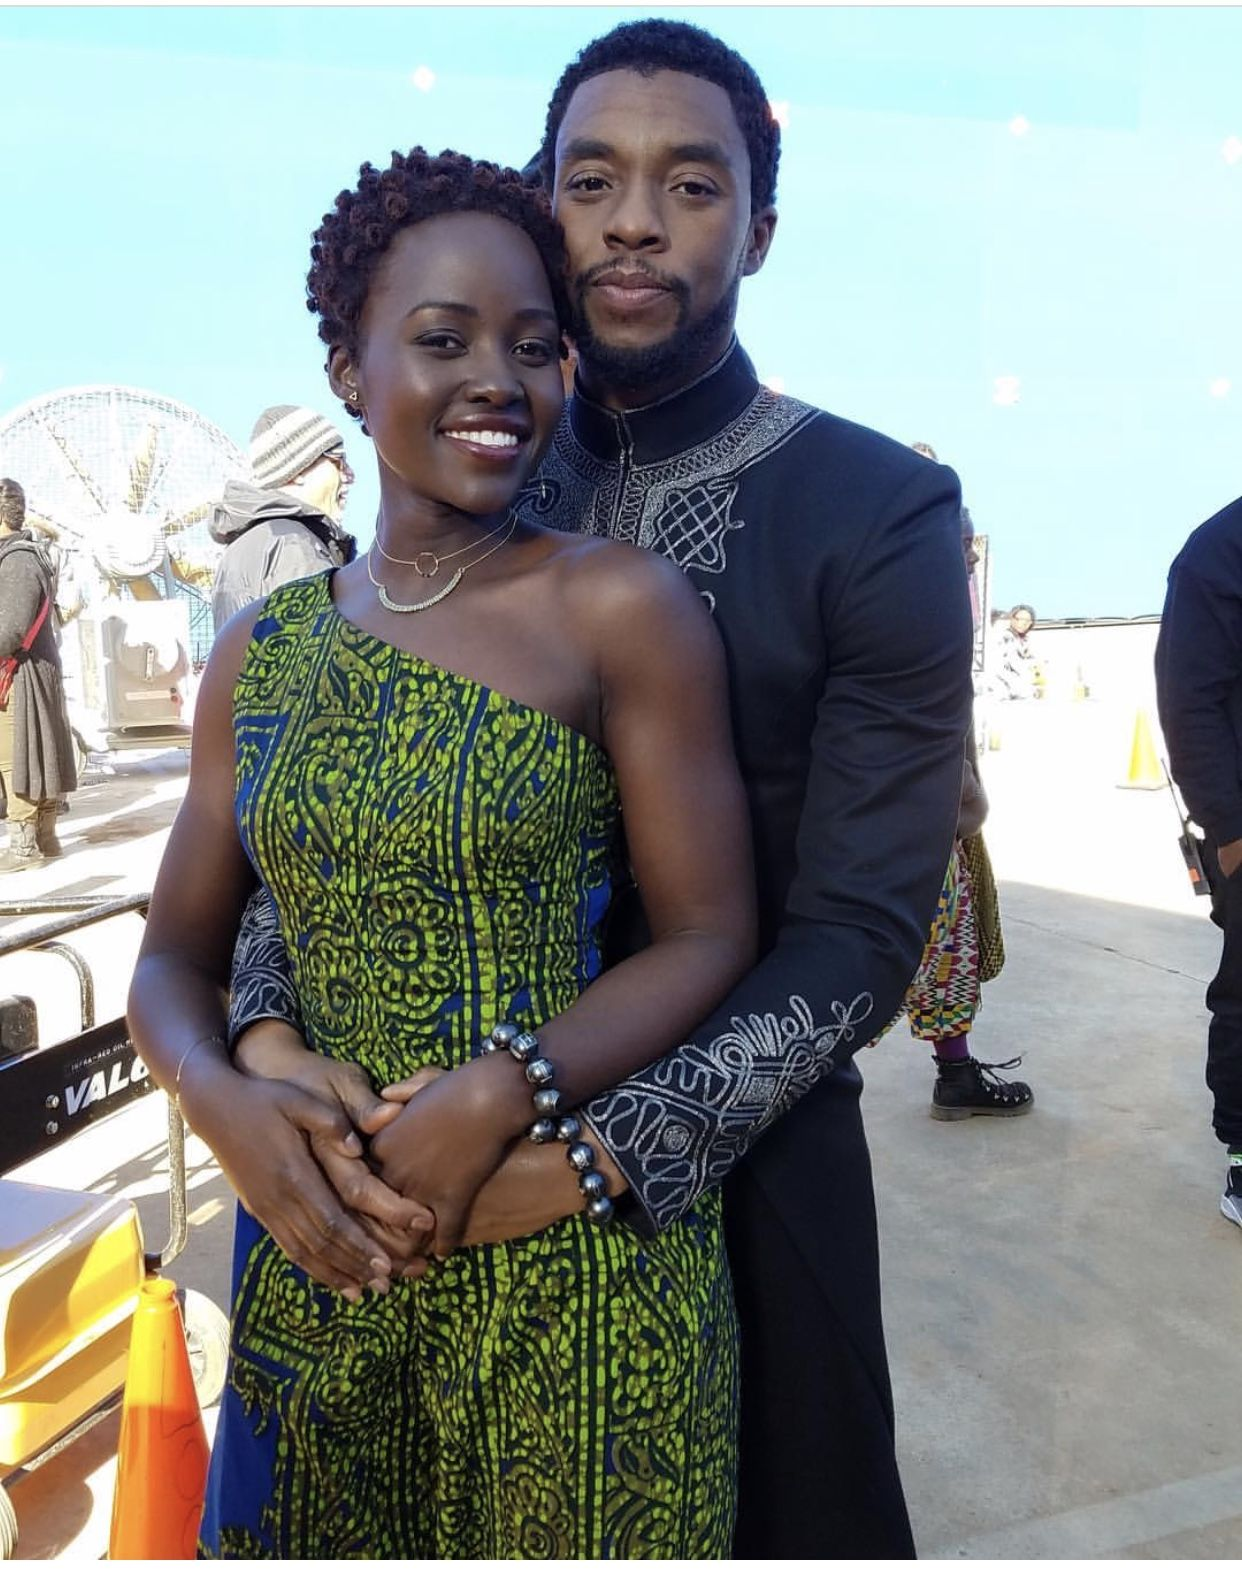 Pin by Shekinah on African style | Black panther marvel, Black beauties, African fashion